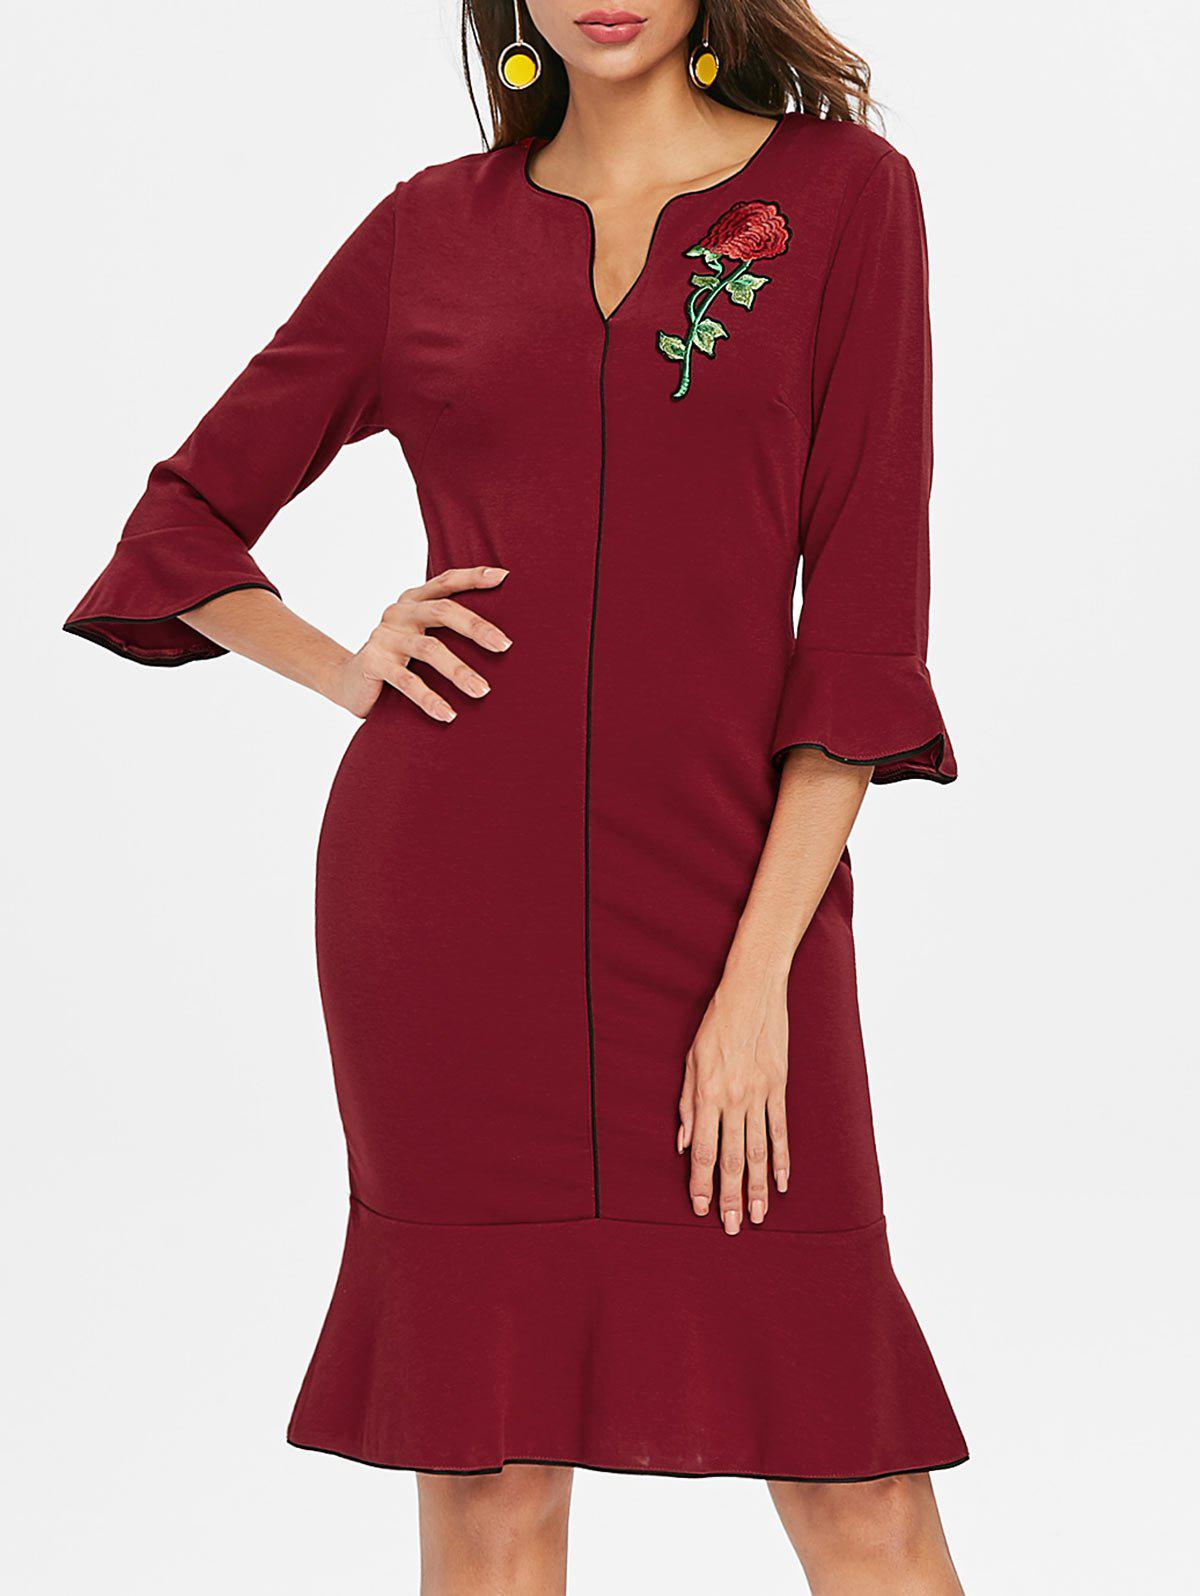 Embroidered Fishtail Dress - RED WINE XL